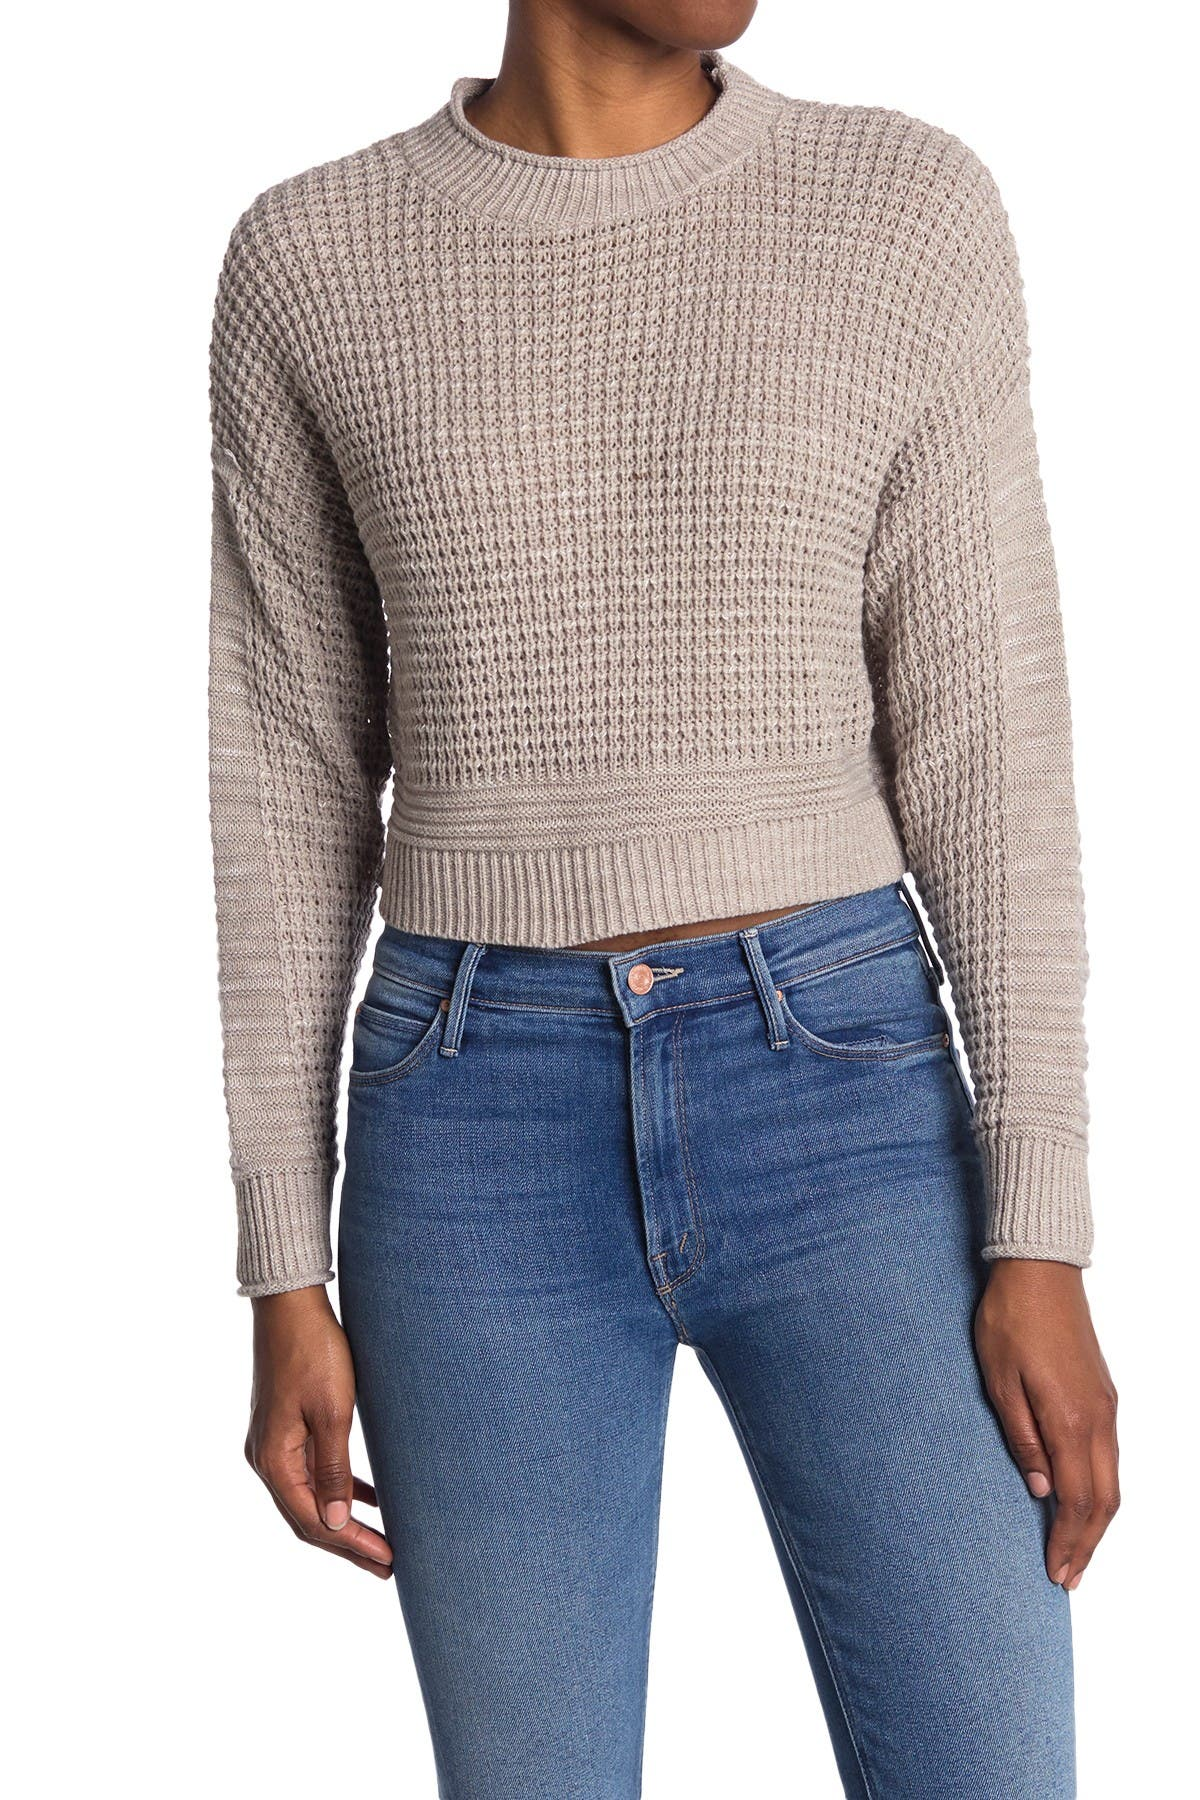 Image of Abound Scoop Neck Sweater